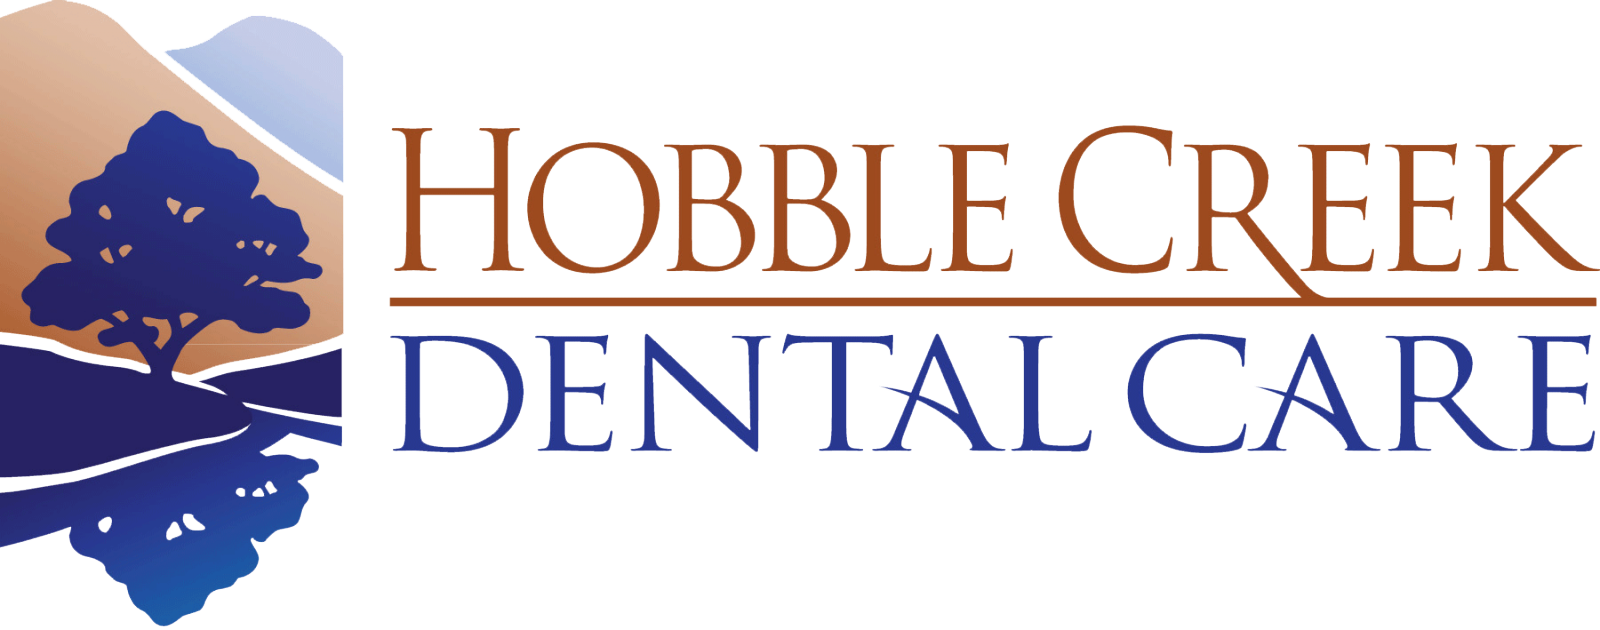 Hobble Creek Dental Care logo